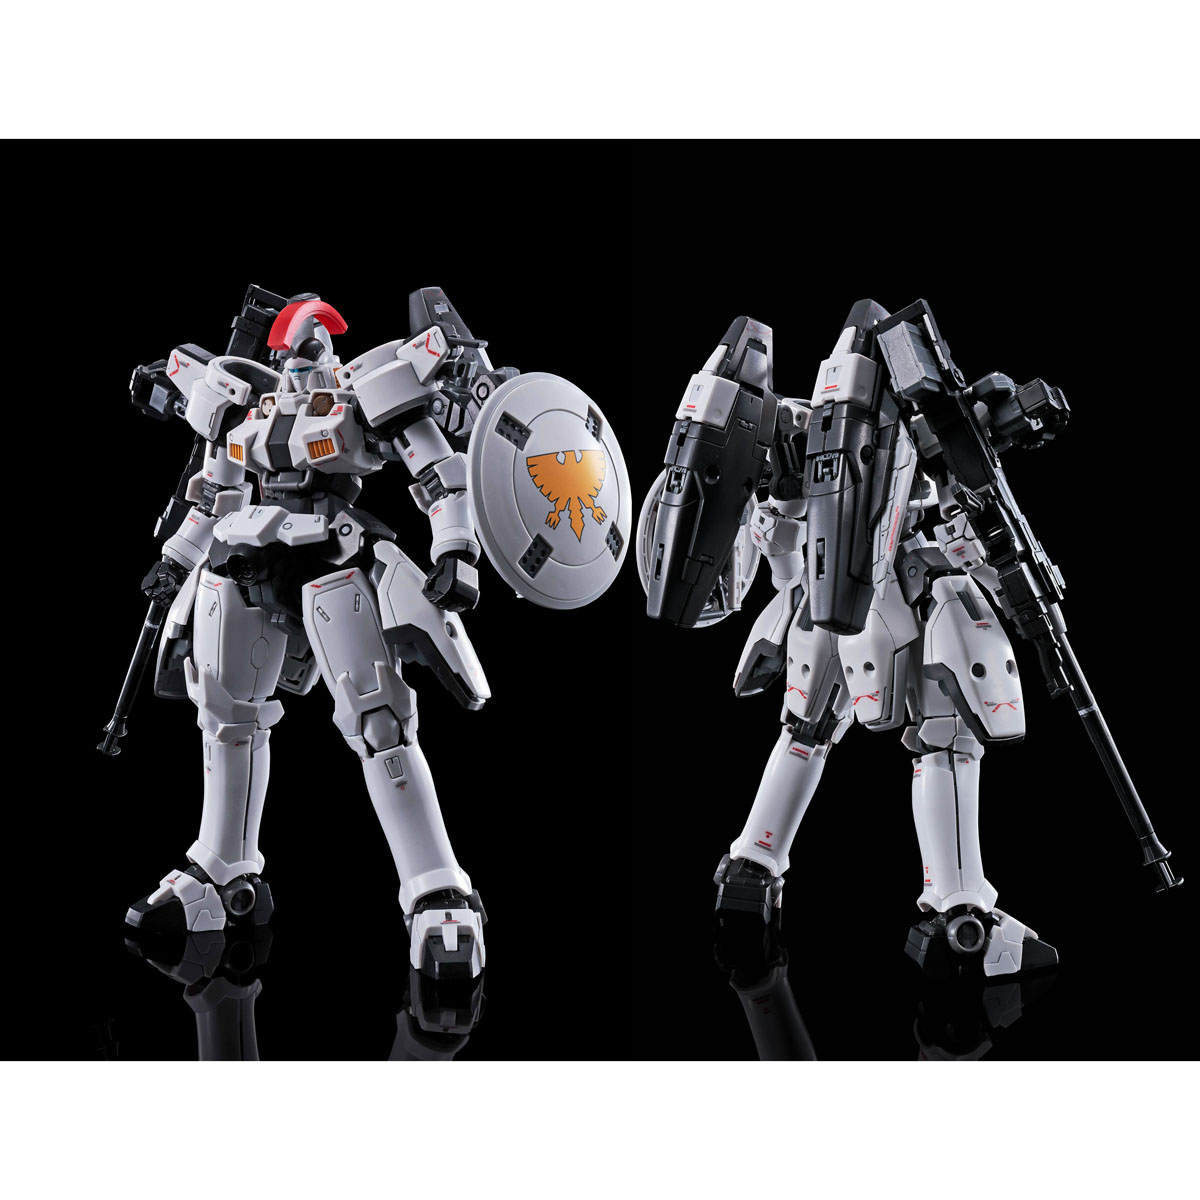 RG 1/144 TALLGEESE(TV ANIMATION COLOR Ver.)  [Sep 2020 Delivery]